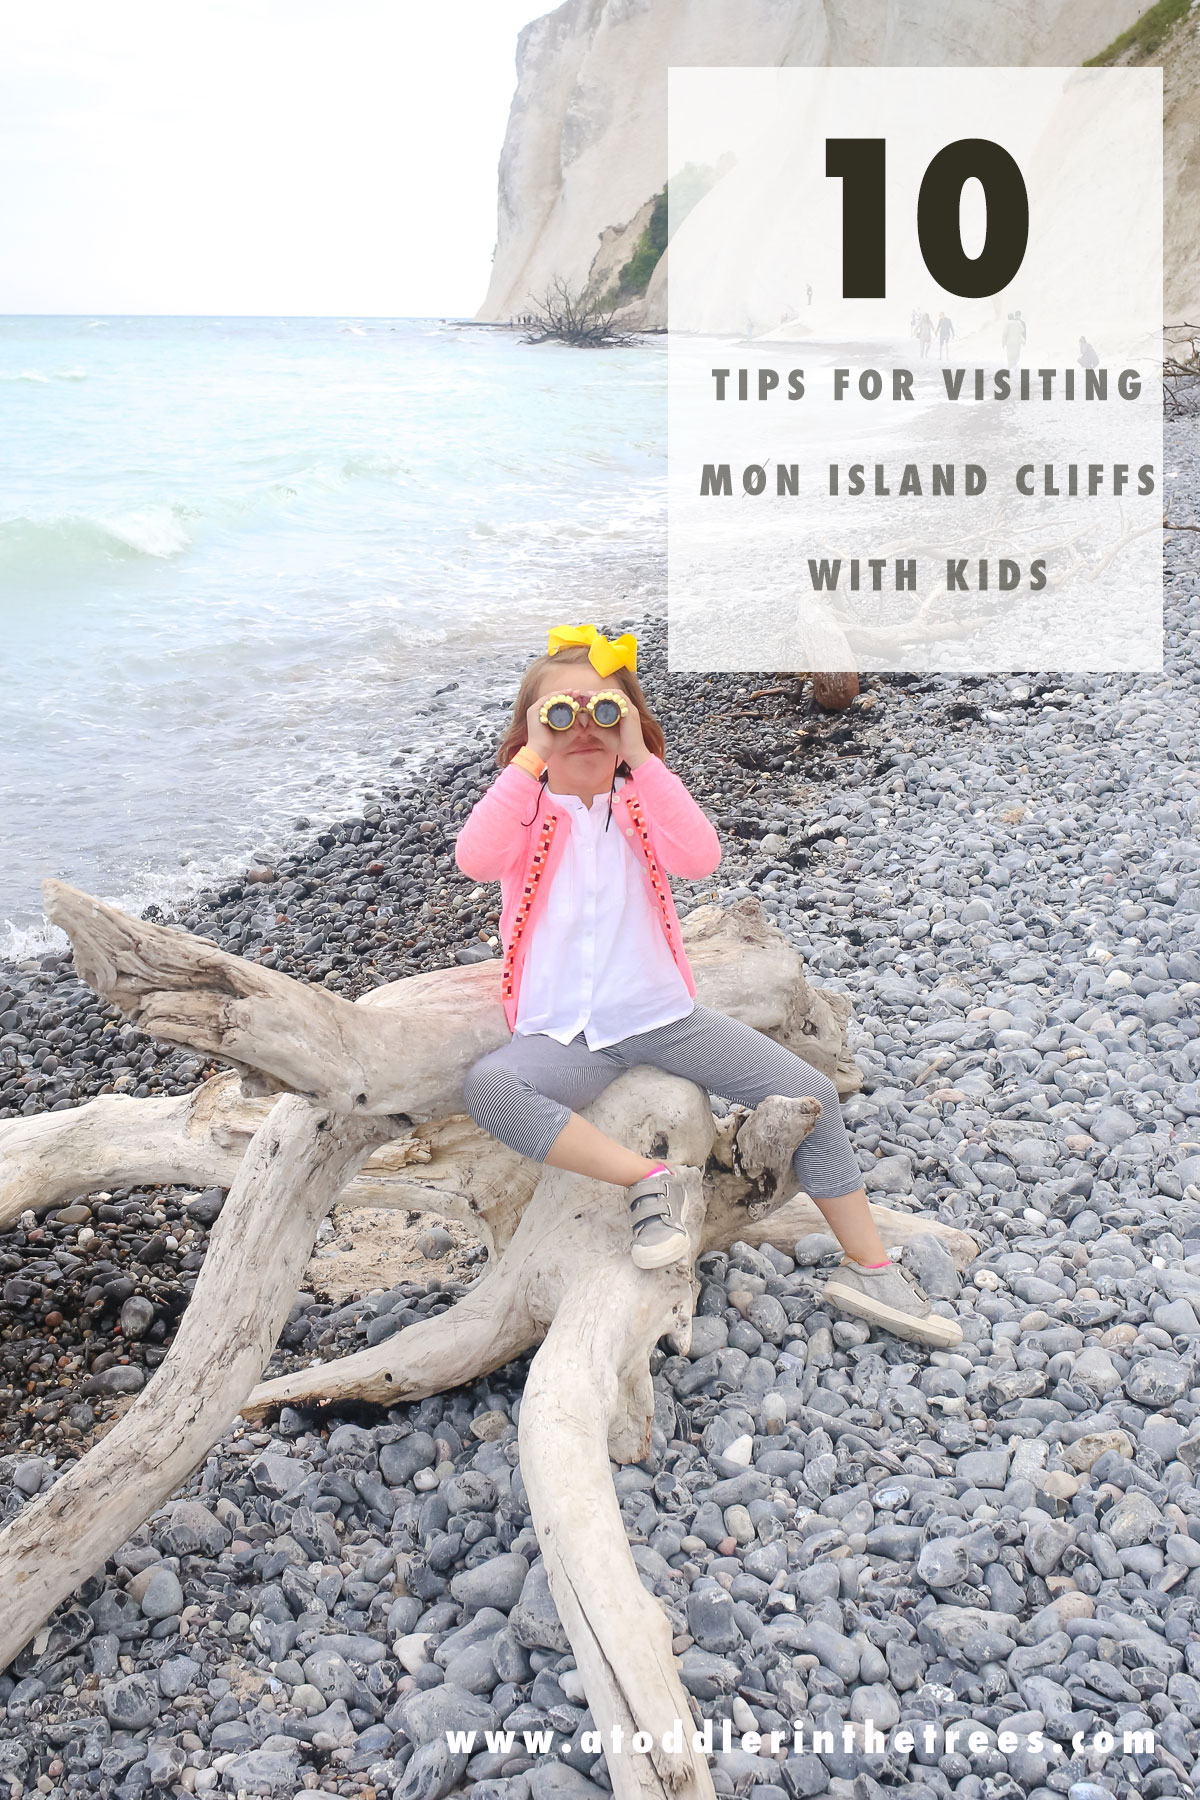 10-Tips-for-Visiting-Mon-Island-Cliffs-with-Kids